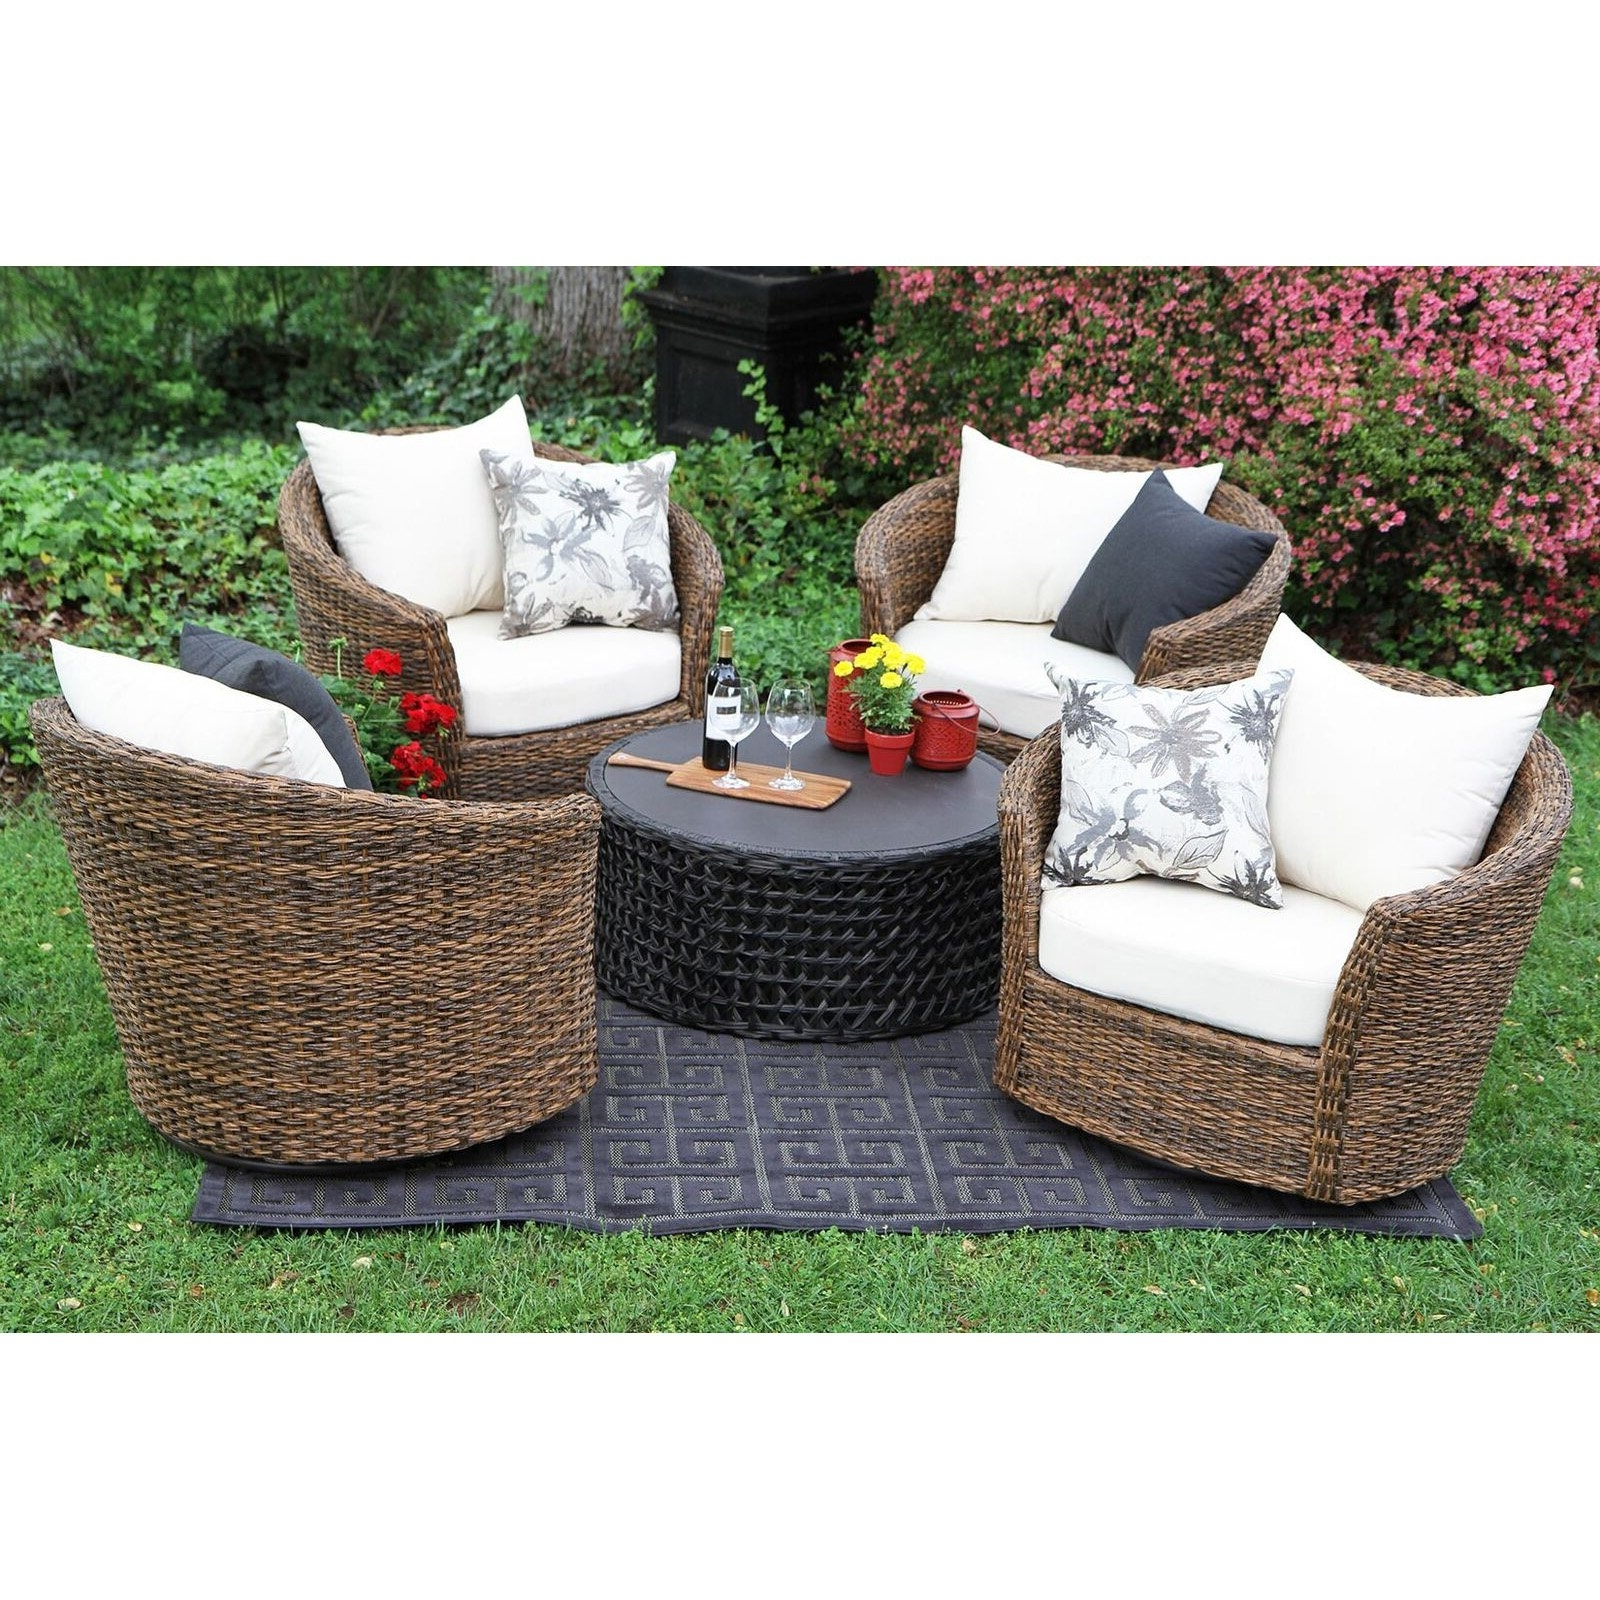 Round Patio Conversation Sets Pertaining To Widely Used Patio : Kroger Patio Furniture Kroger Outdoor Furniture (View 4 of 20)